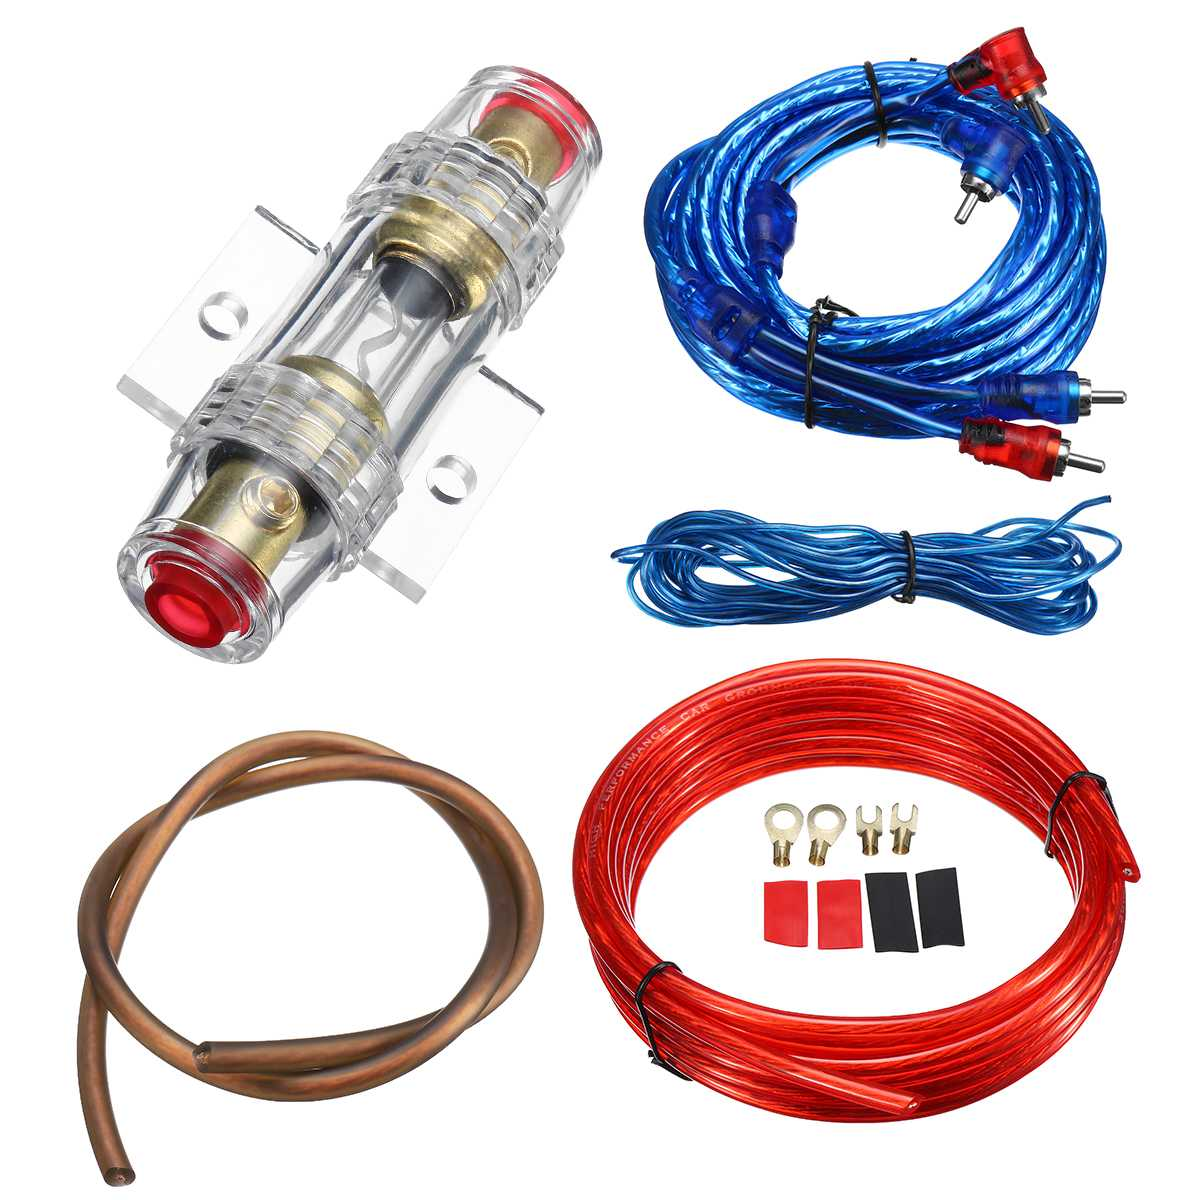 hight resolution of 1500w car audio wire 8ga amplifier cable subwoofer speaker installation kit amp rca power cable agu fuse set in battery cables connectors from automobiles